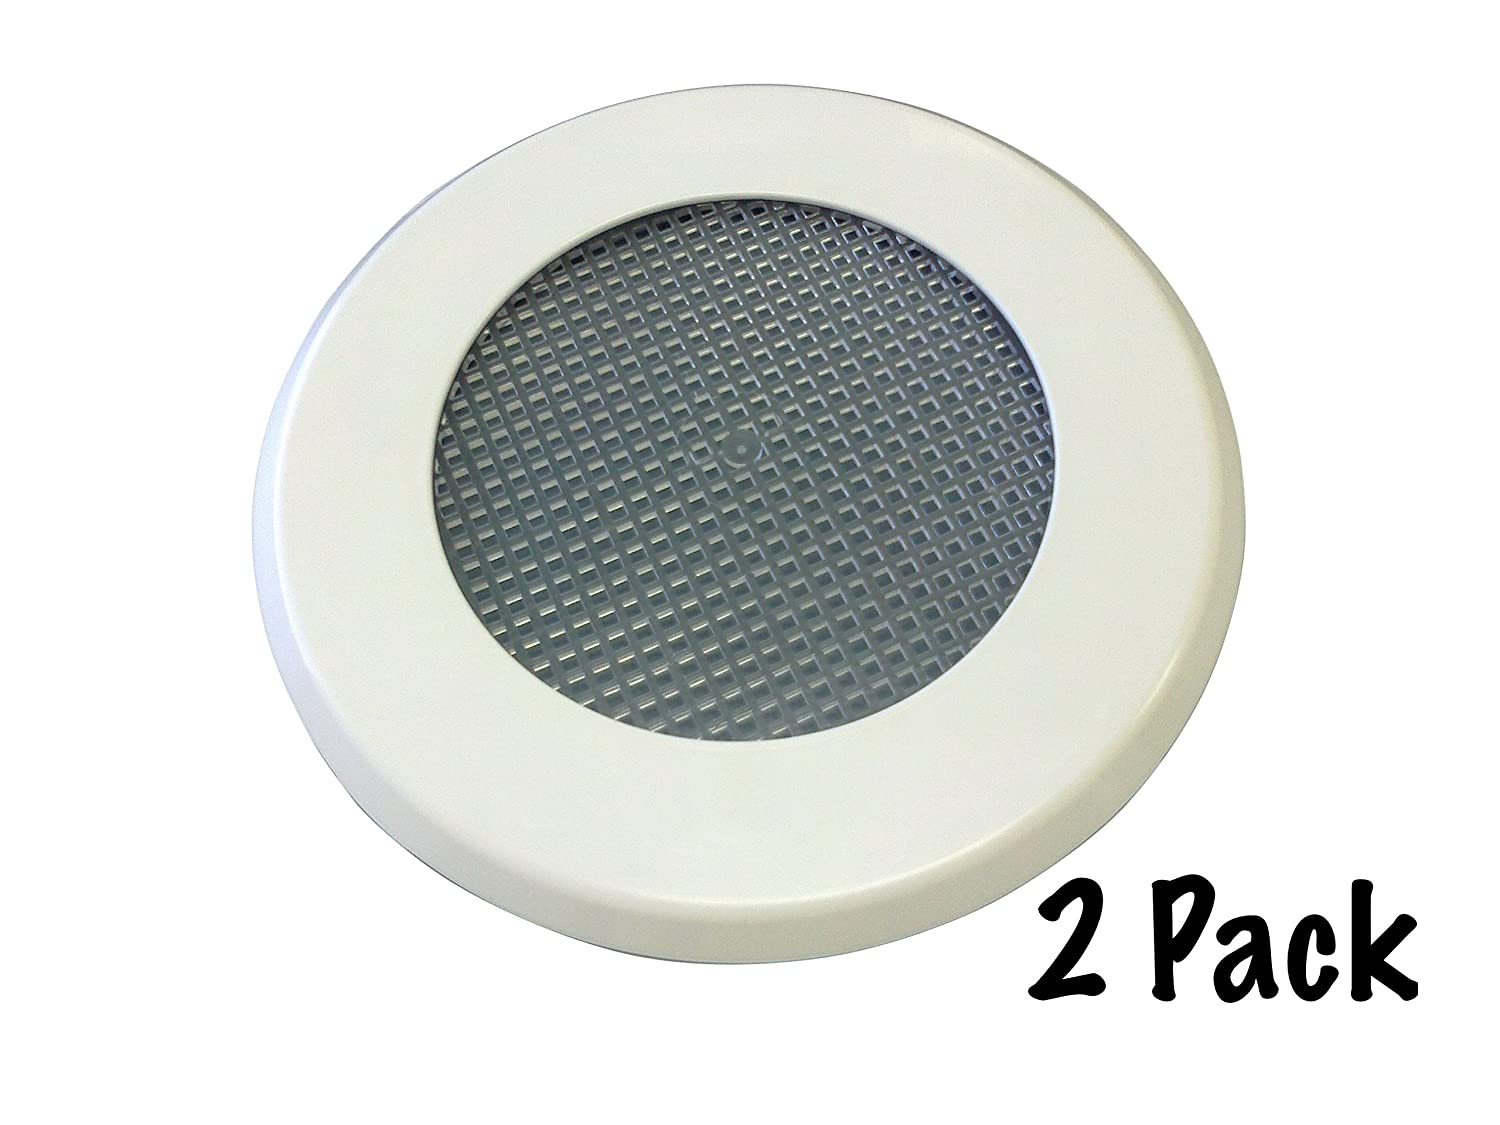 Amazon.com : Turner Light Covers Recessed Light Cover Replacement Kit With  Mounting Ring, Trim Plate And Screen, White (2 Pack) : Patio, Lawn U0026 Garden